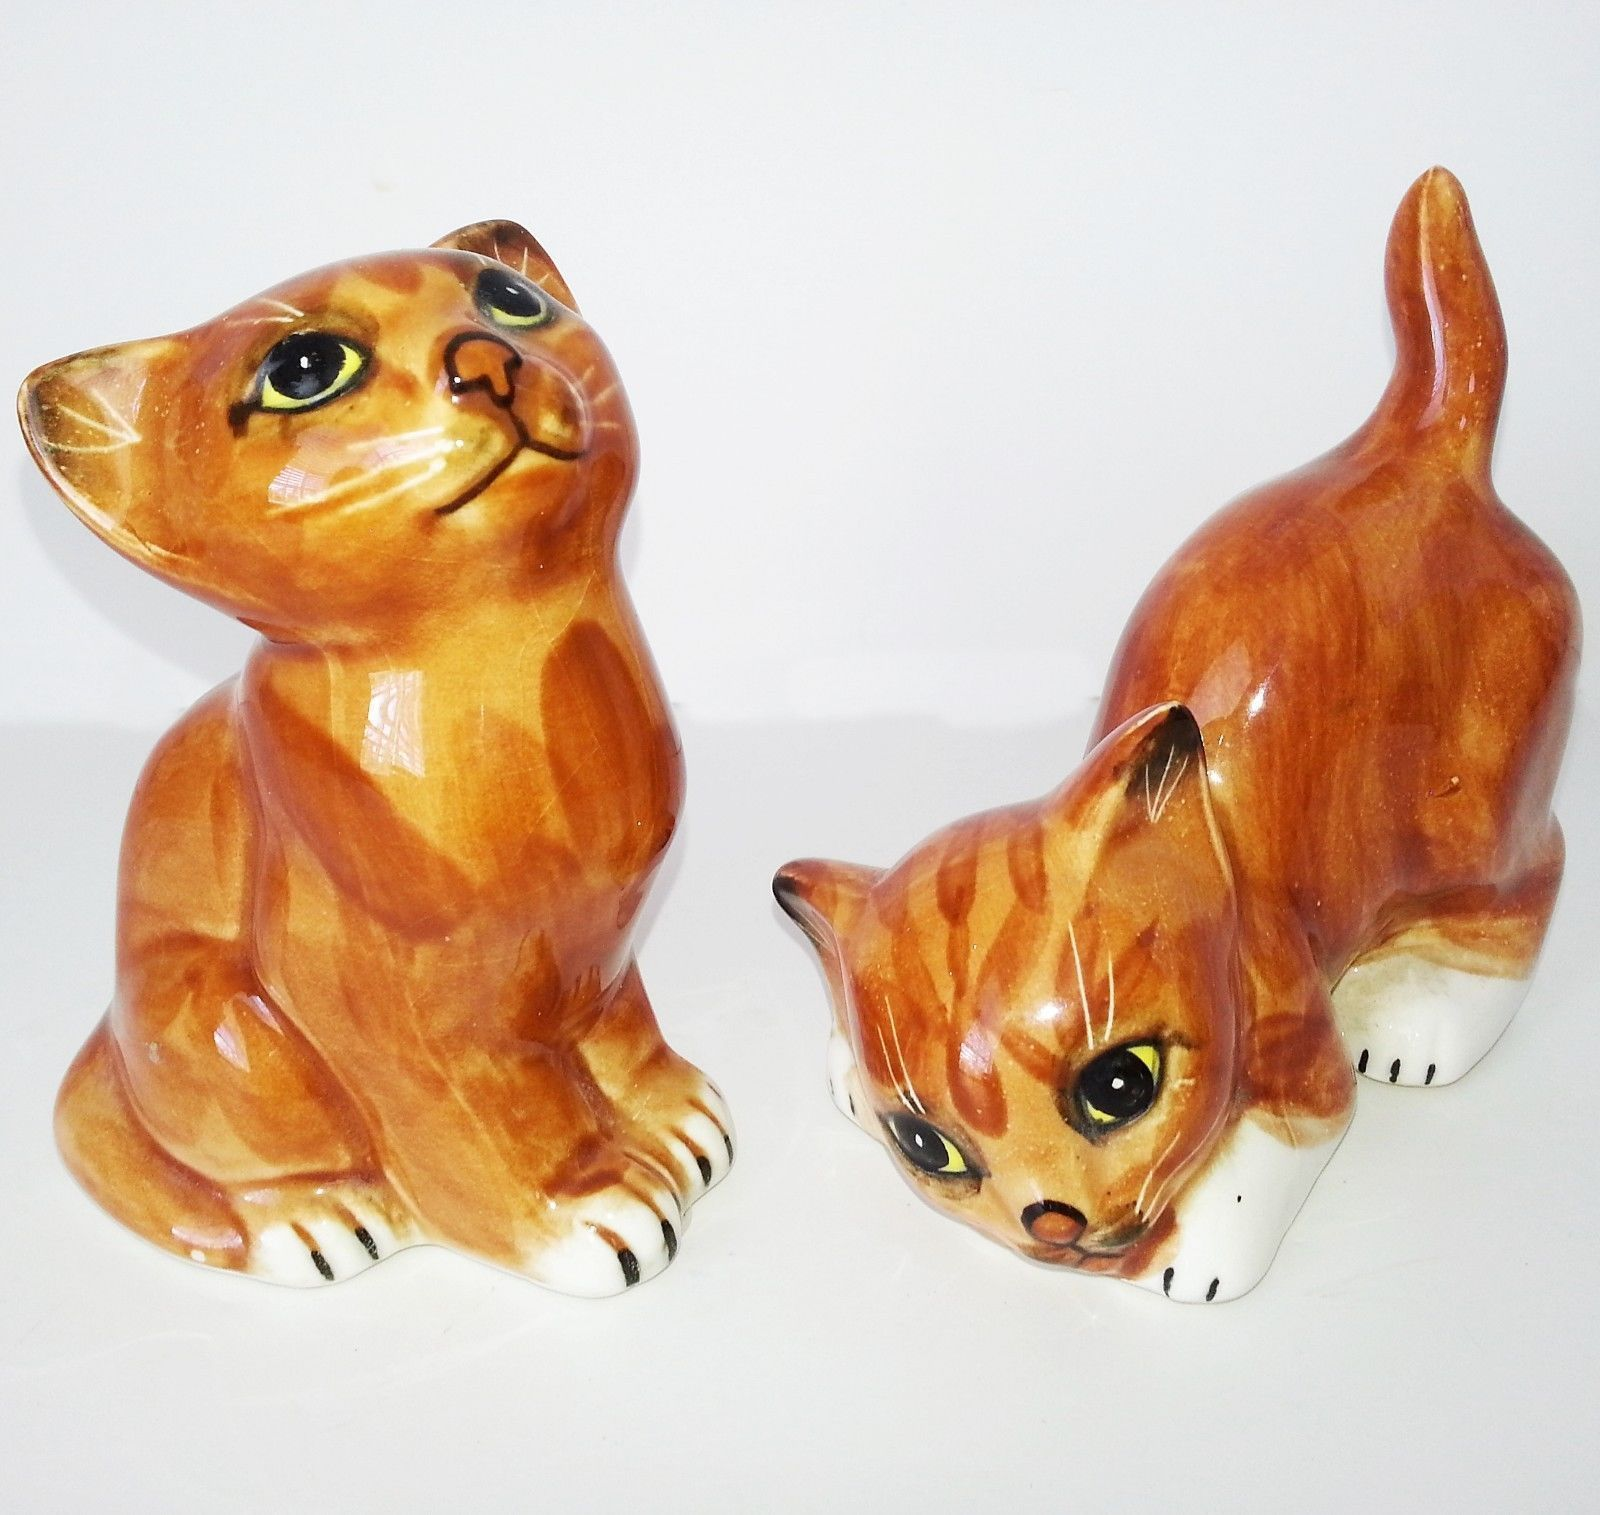 2 Mann 1978 Vintage Porcelain Ginger Cat Figure Figurine